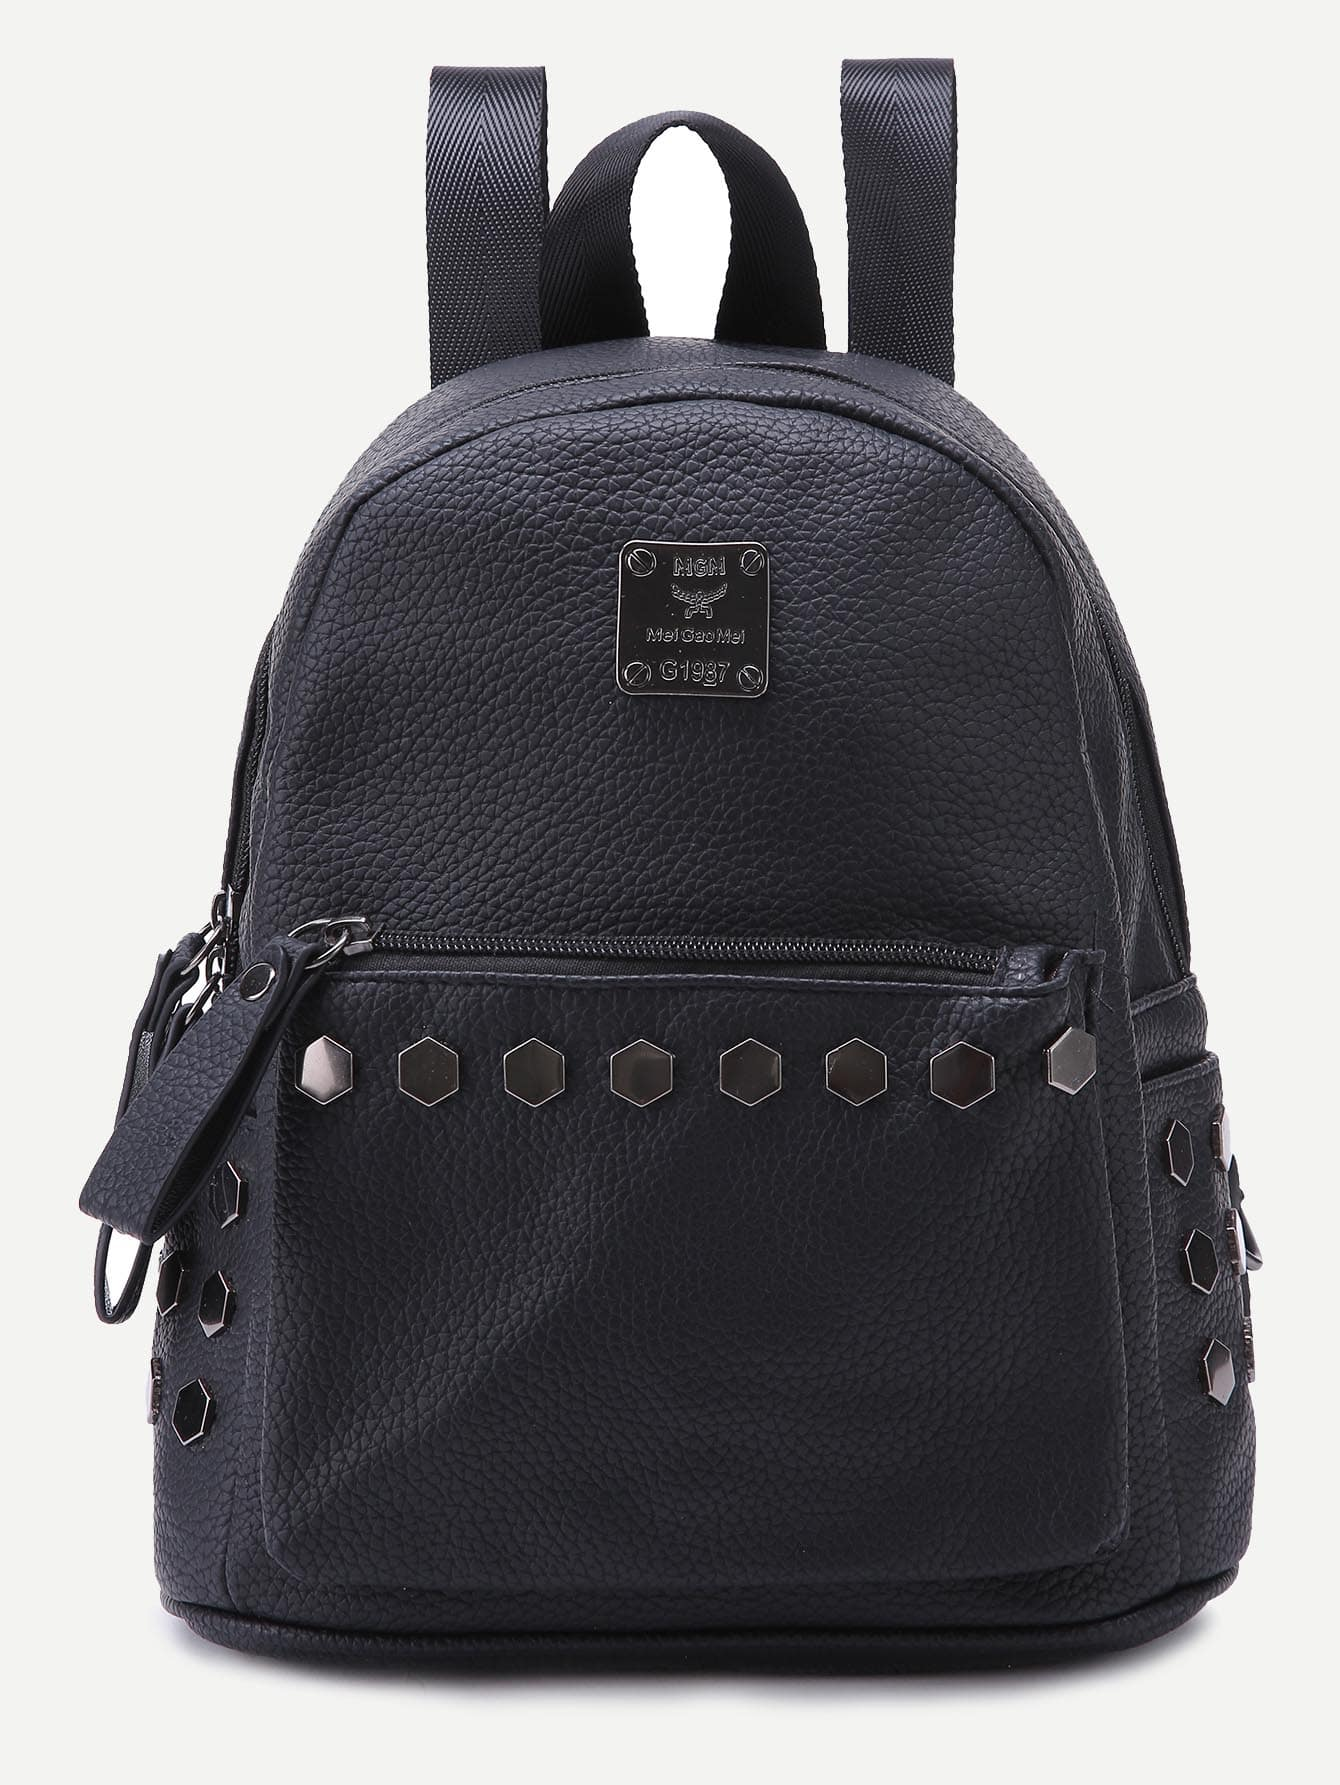 Faux Leather Studded BackpackFaux Leather Studded Backpack<br><br>color: Black<br>size: None